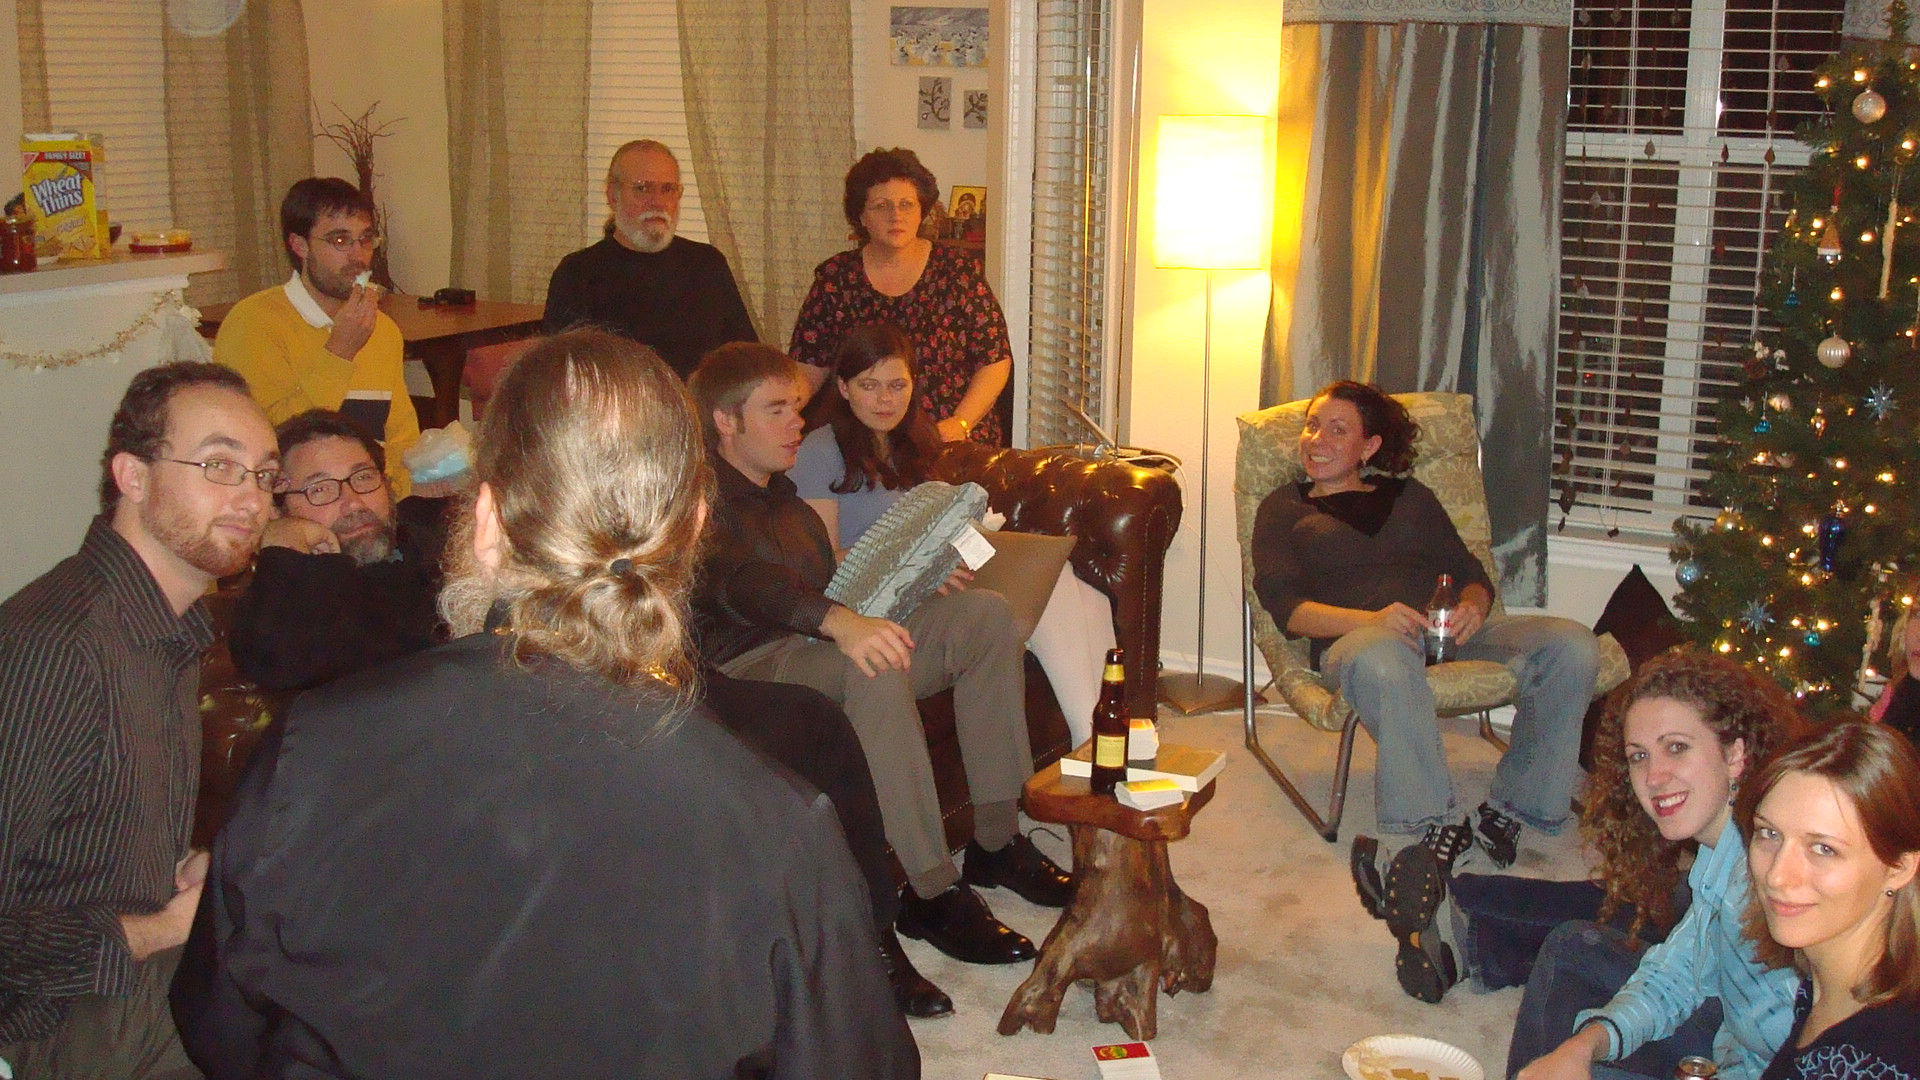 """All of us together playing """"Apples to Apples"""""""